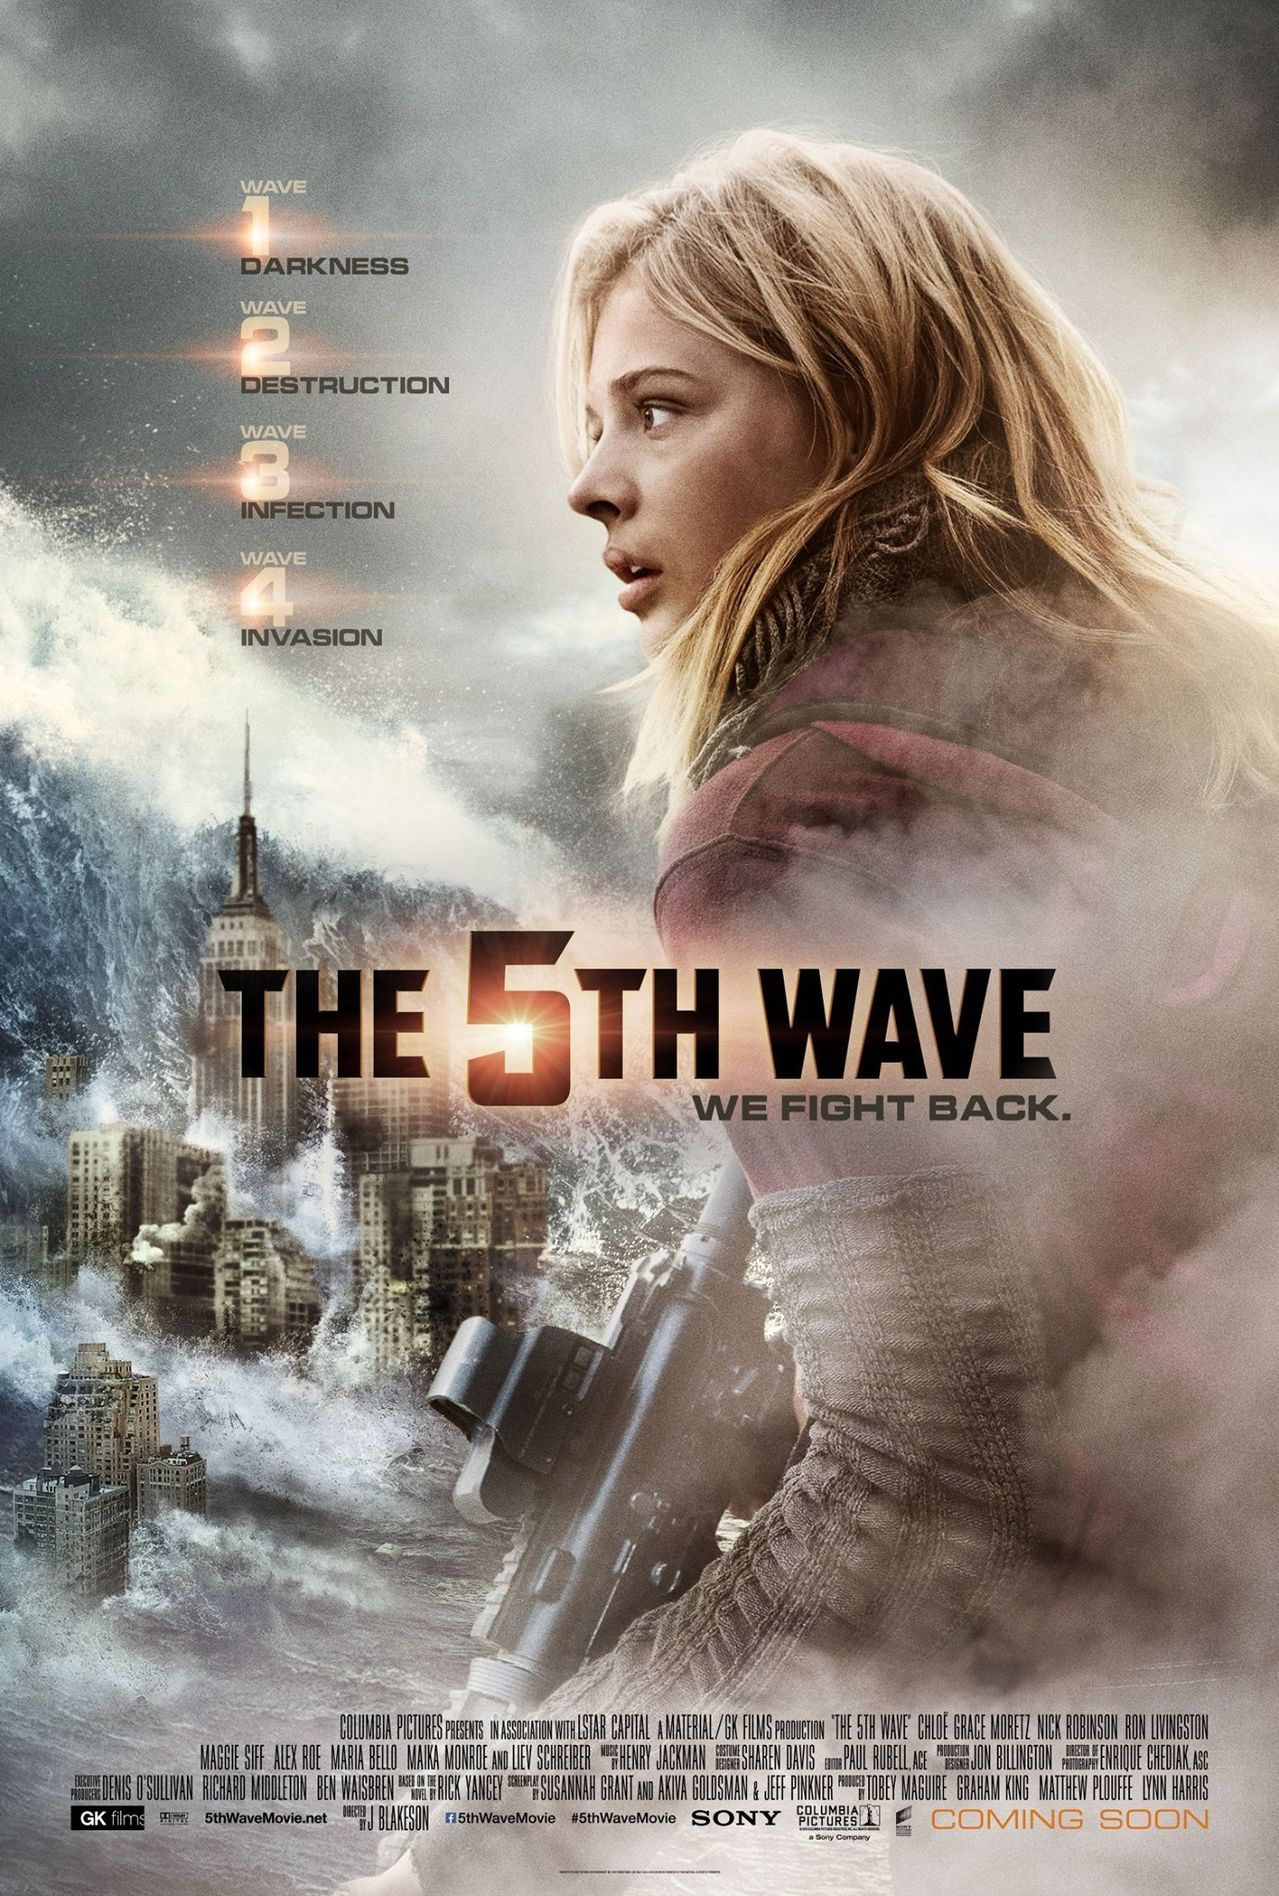 Vizioneaza Filme Hd Online Subtitrate In Limba Romana Direct Din Site Ul Nostru Filme Filmehd Filmeonline The 5th Wave Movie The 5th Wave The Fifth Wave